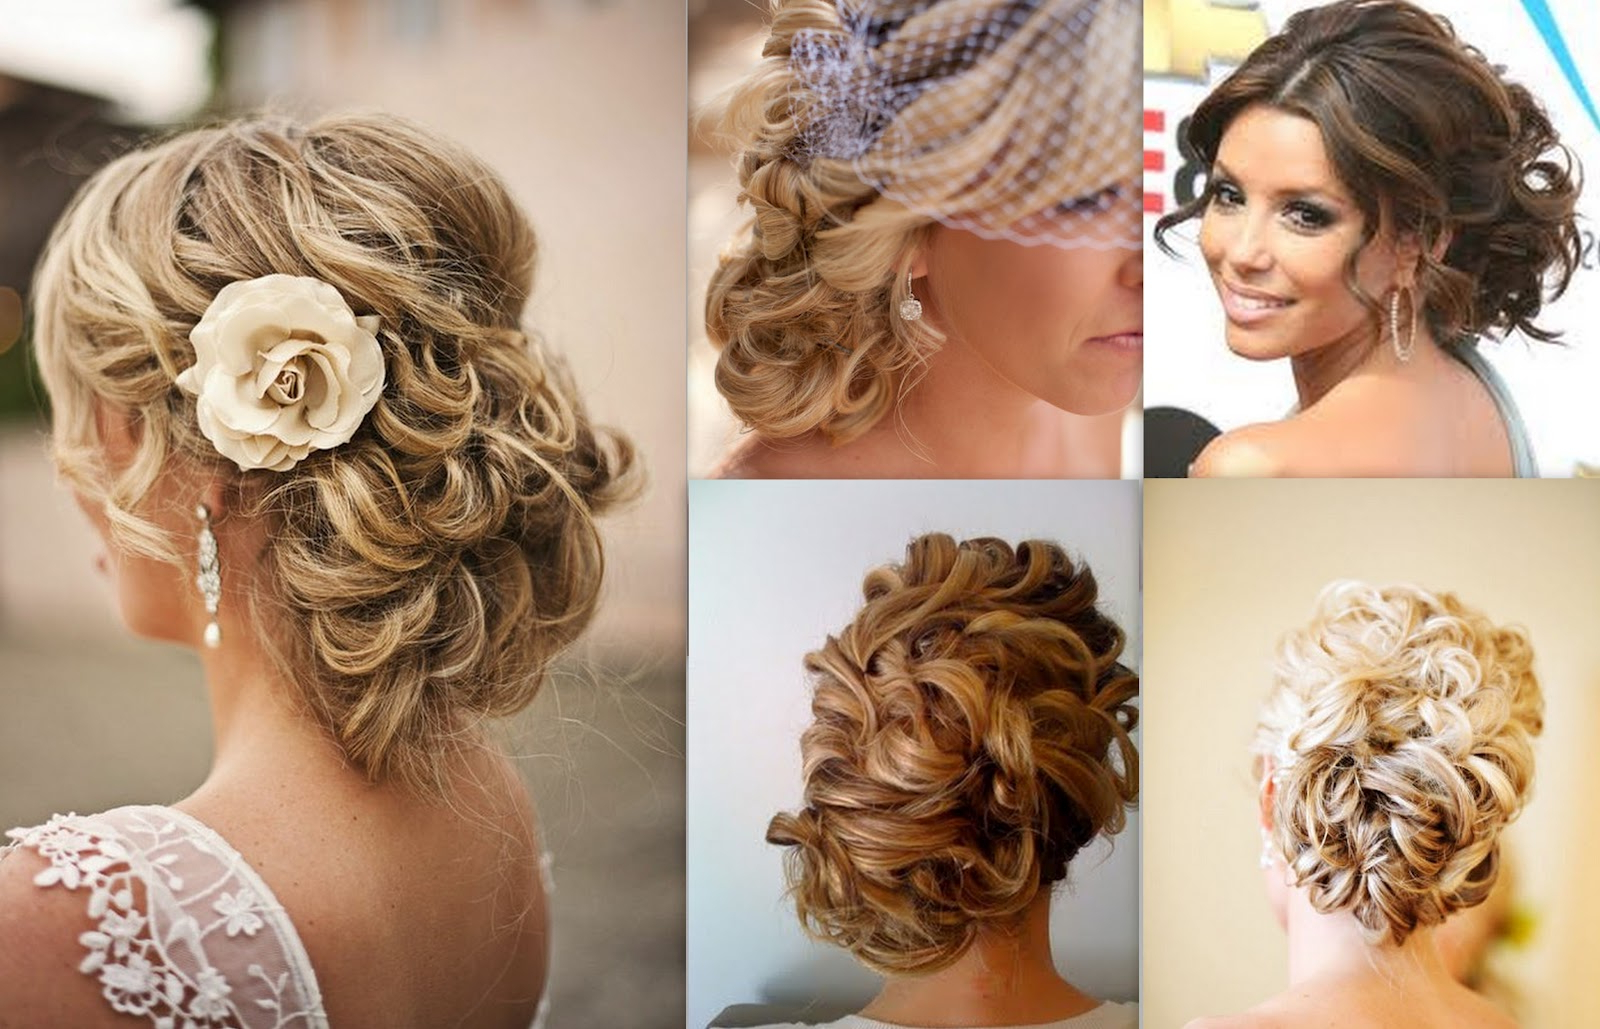 Hair Extensions For Your Dallas Wedding Day Regarding 2017 Large Bun Wedding Hairstyles With Messy Curls (View 10 of 20)